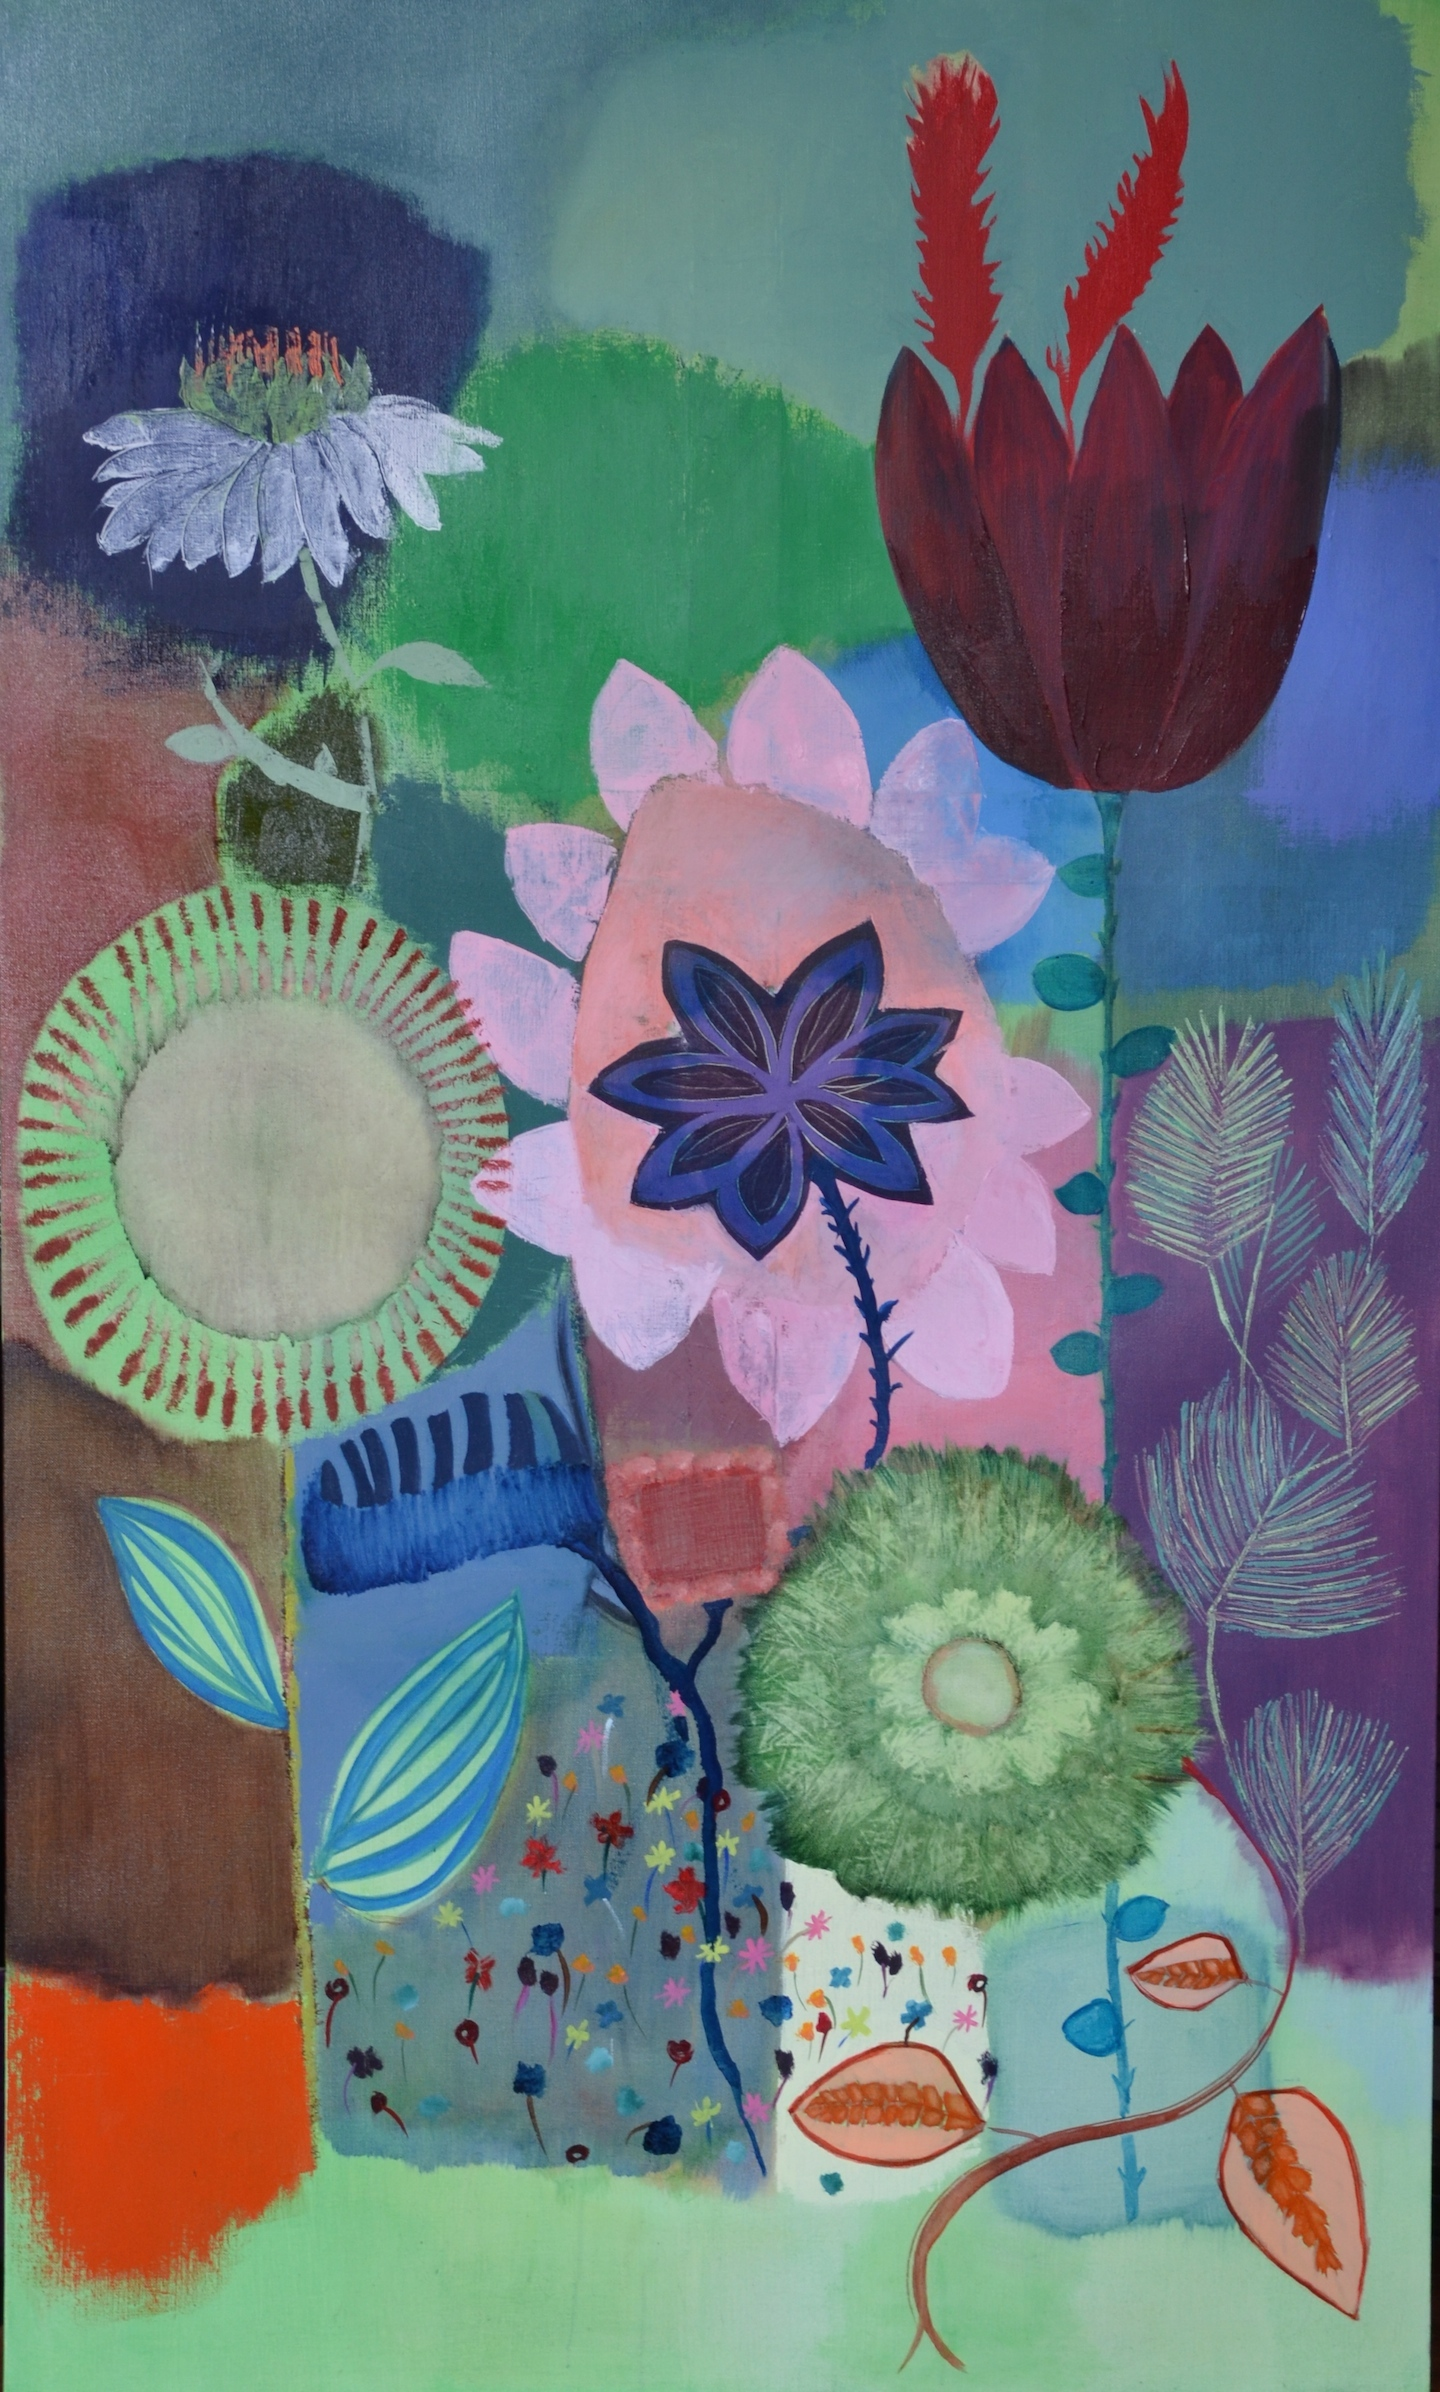 Fleurs, Vertical 2014, Private collection